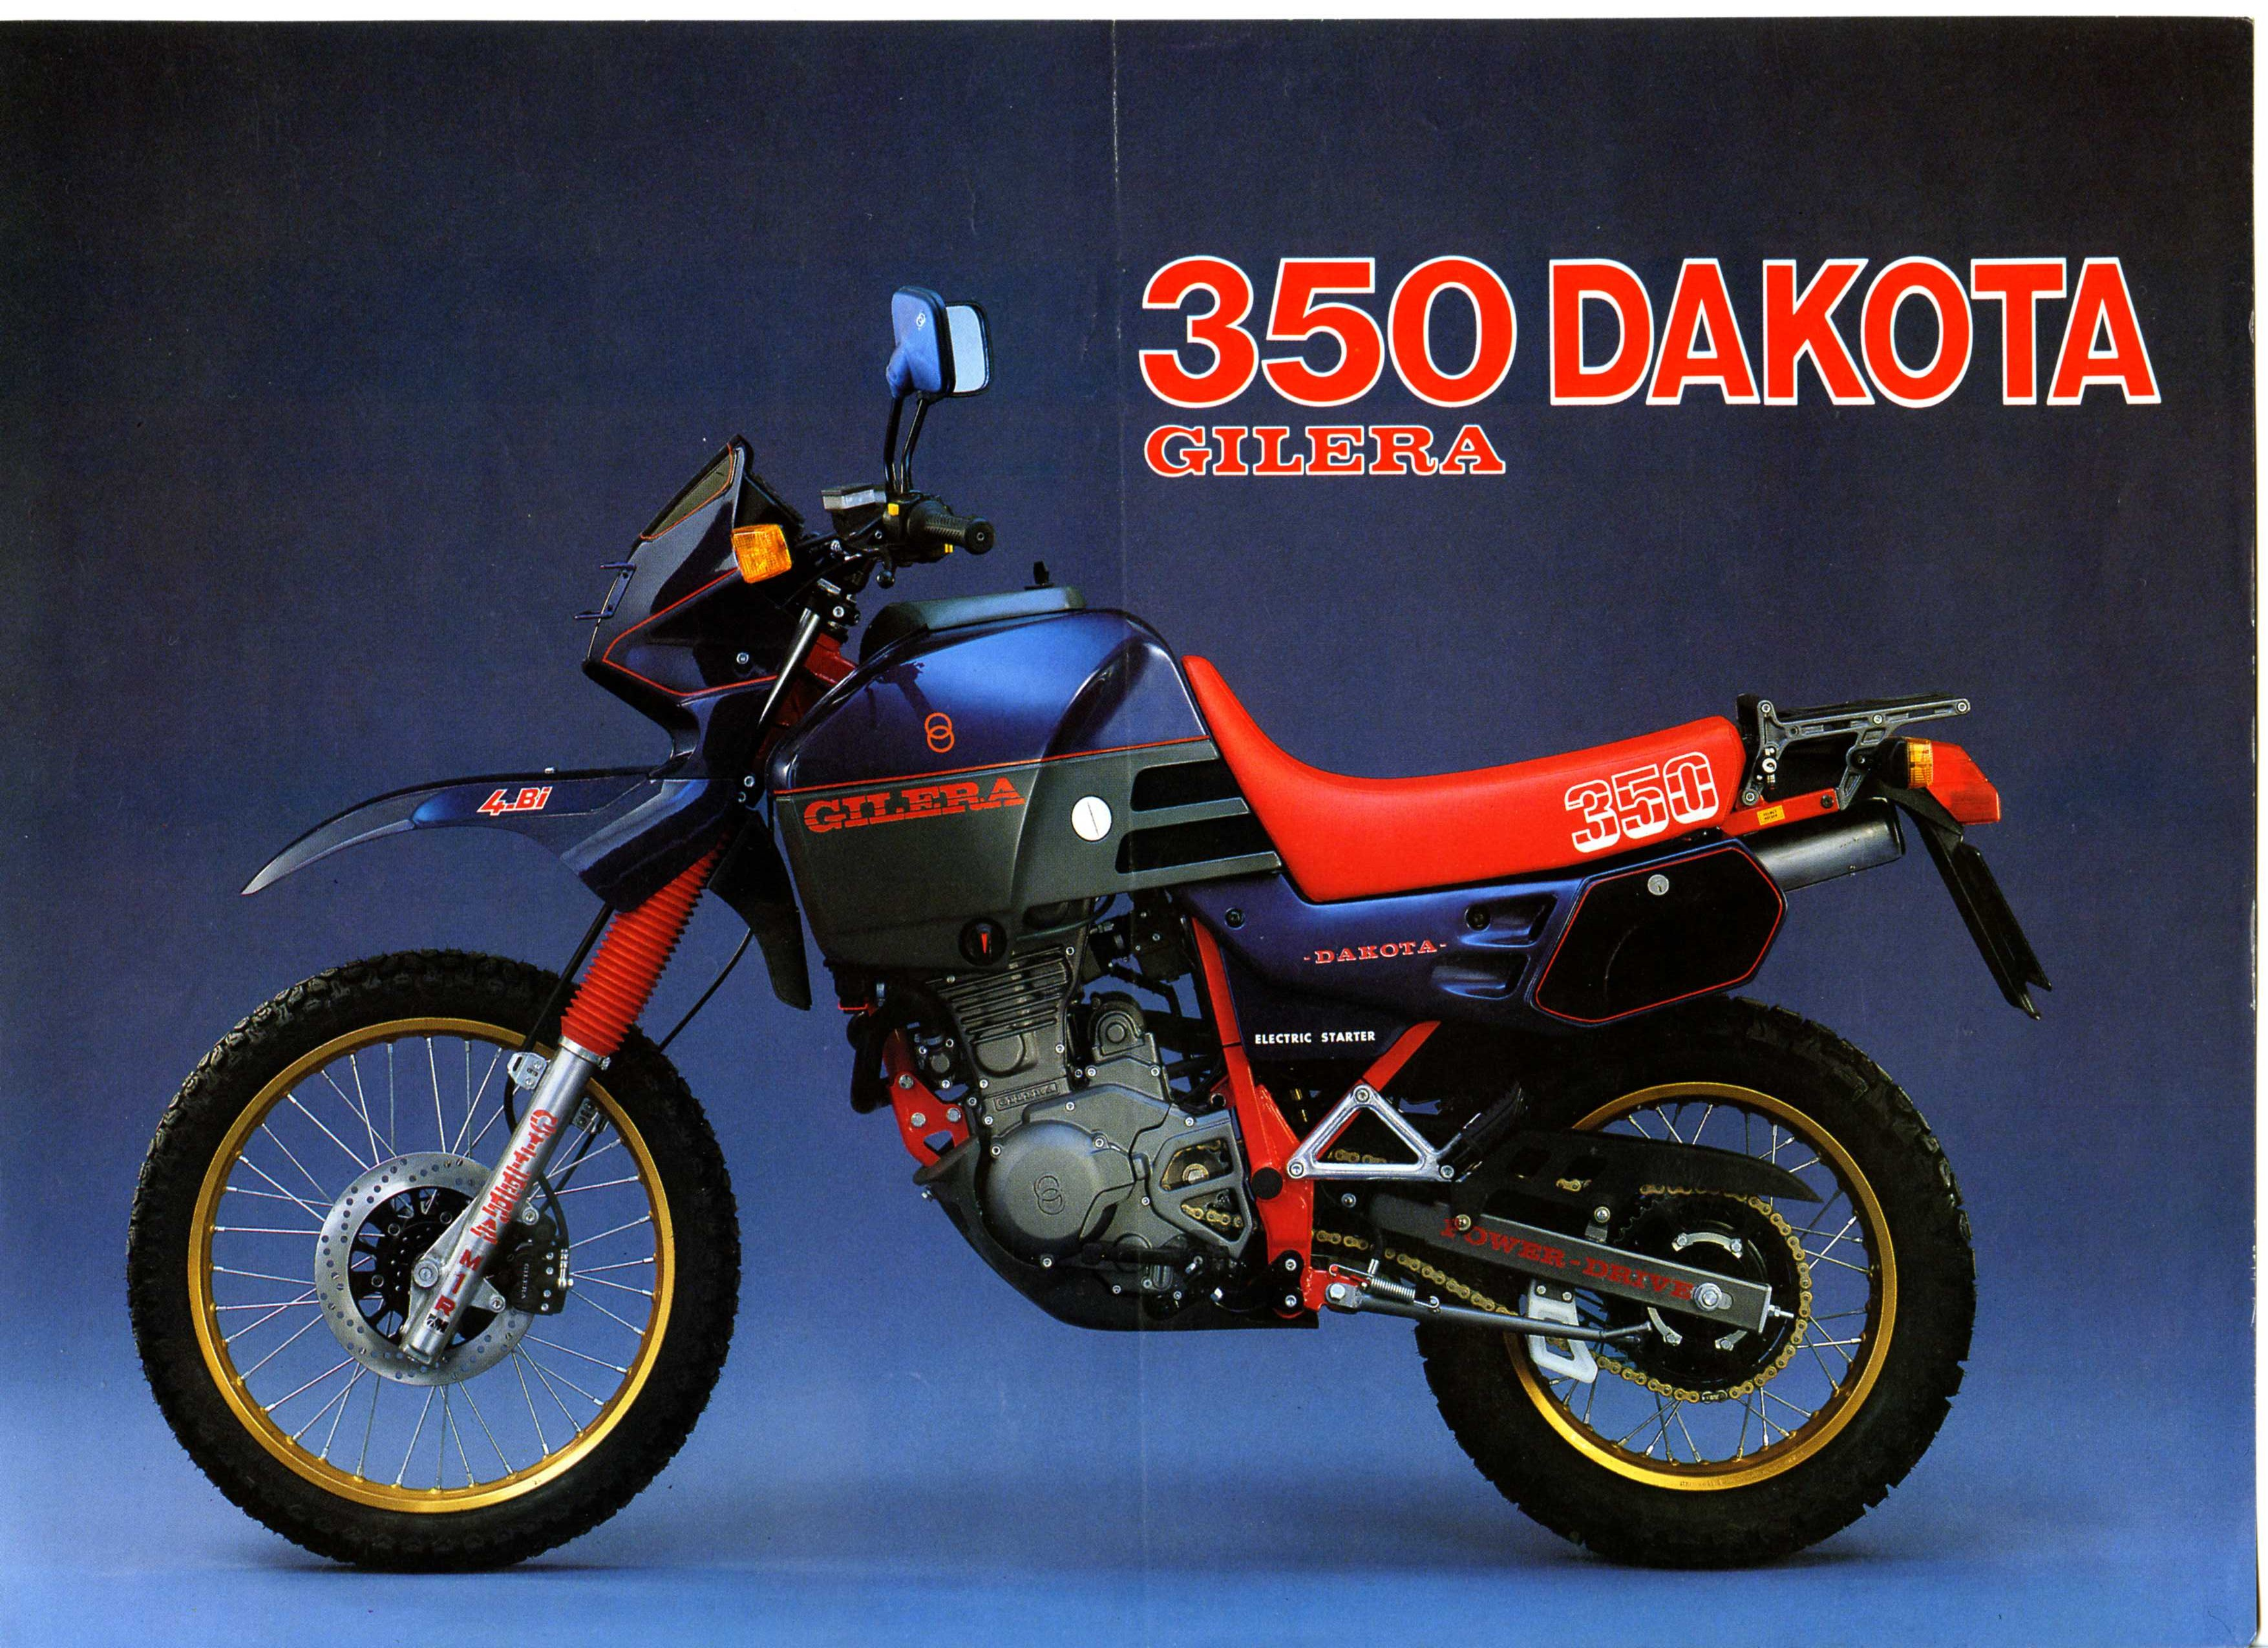 Gilera 500 Dakota images #95170